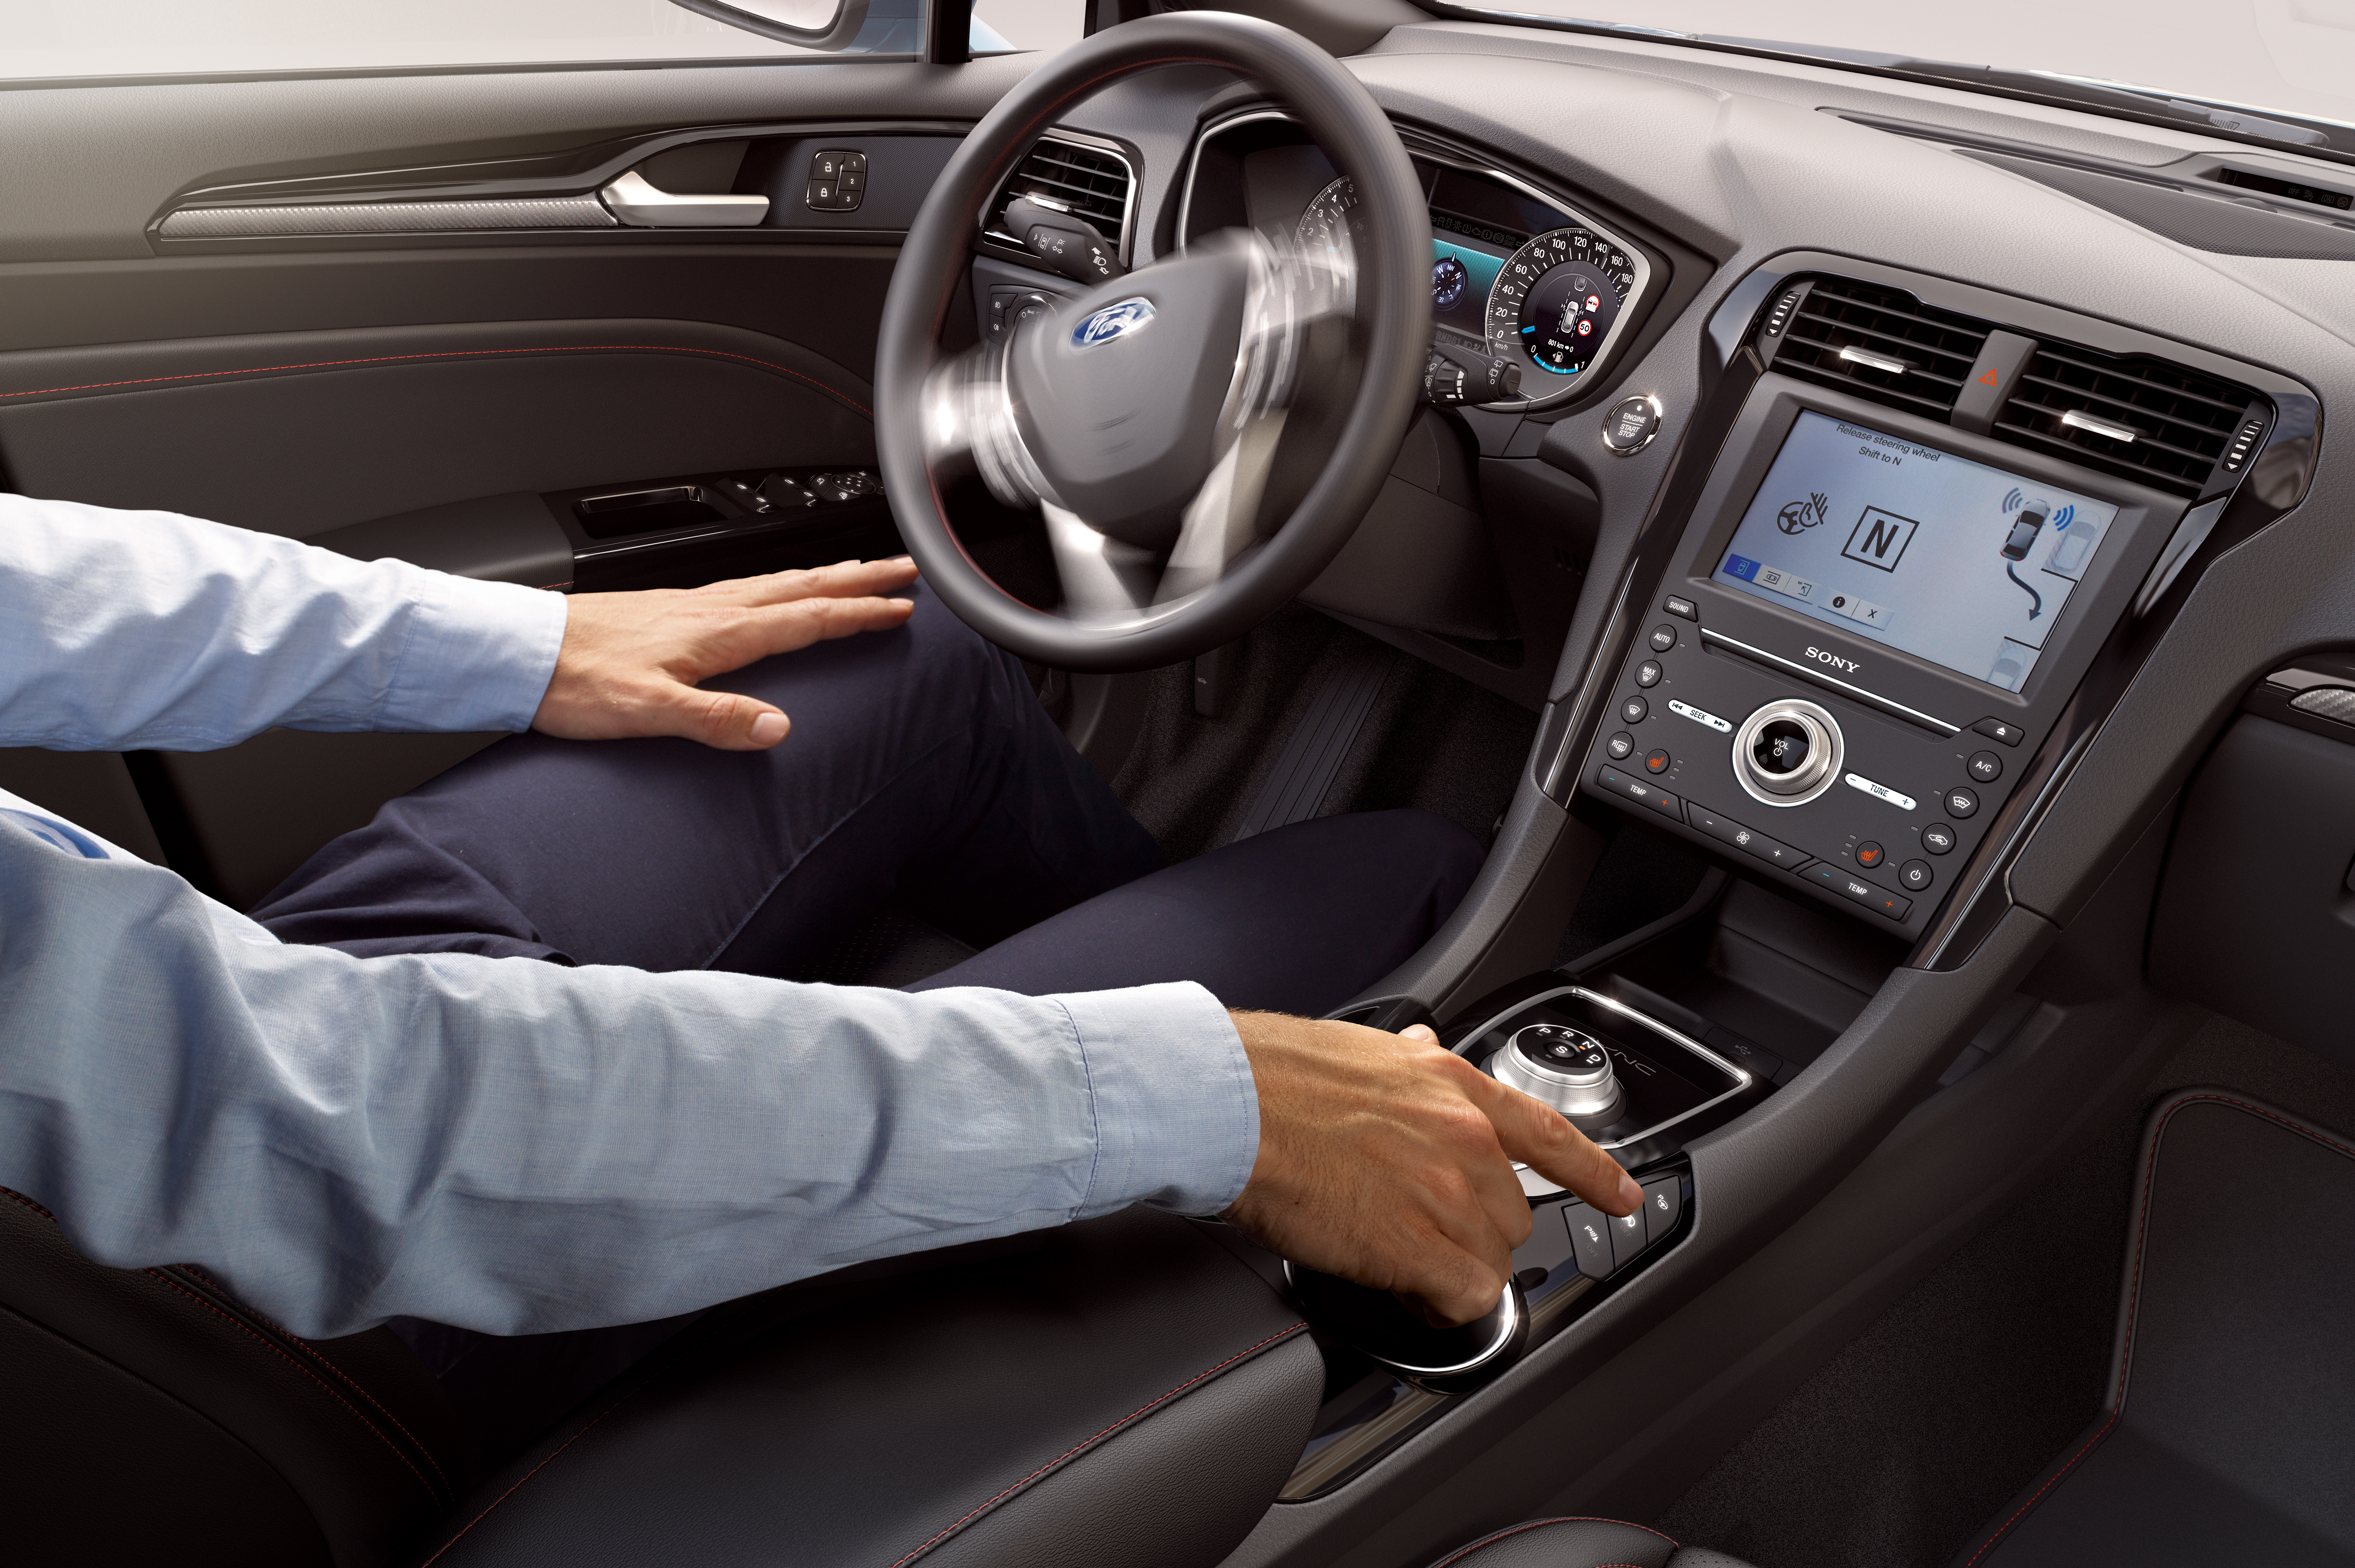 47 All New Ford Mondeo 2020 Reviews with Ford Mondeo 2020